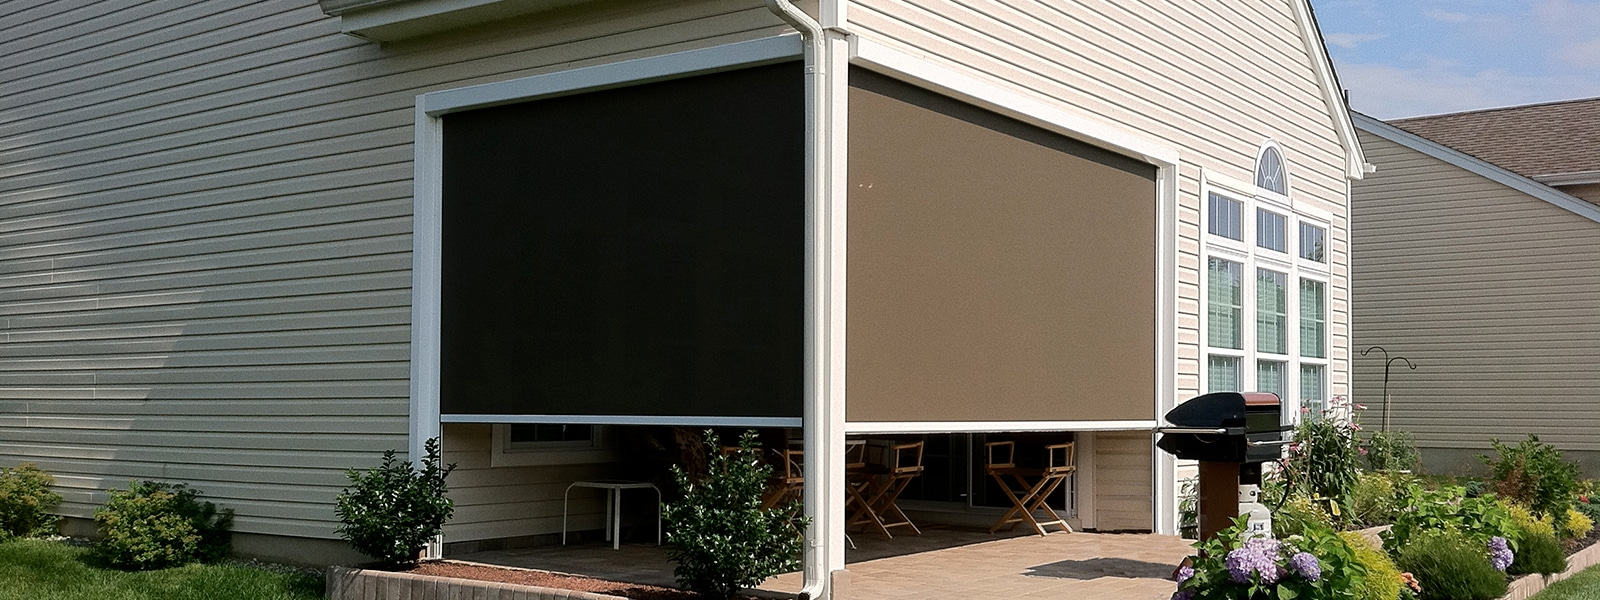 Exterior sun shades for windows - Exterior Solar Shades Sc